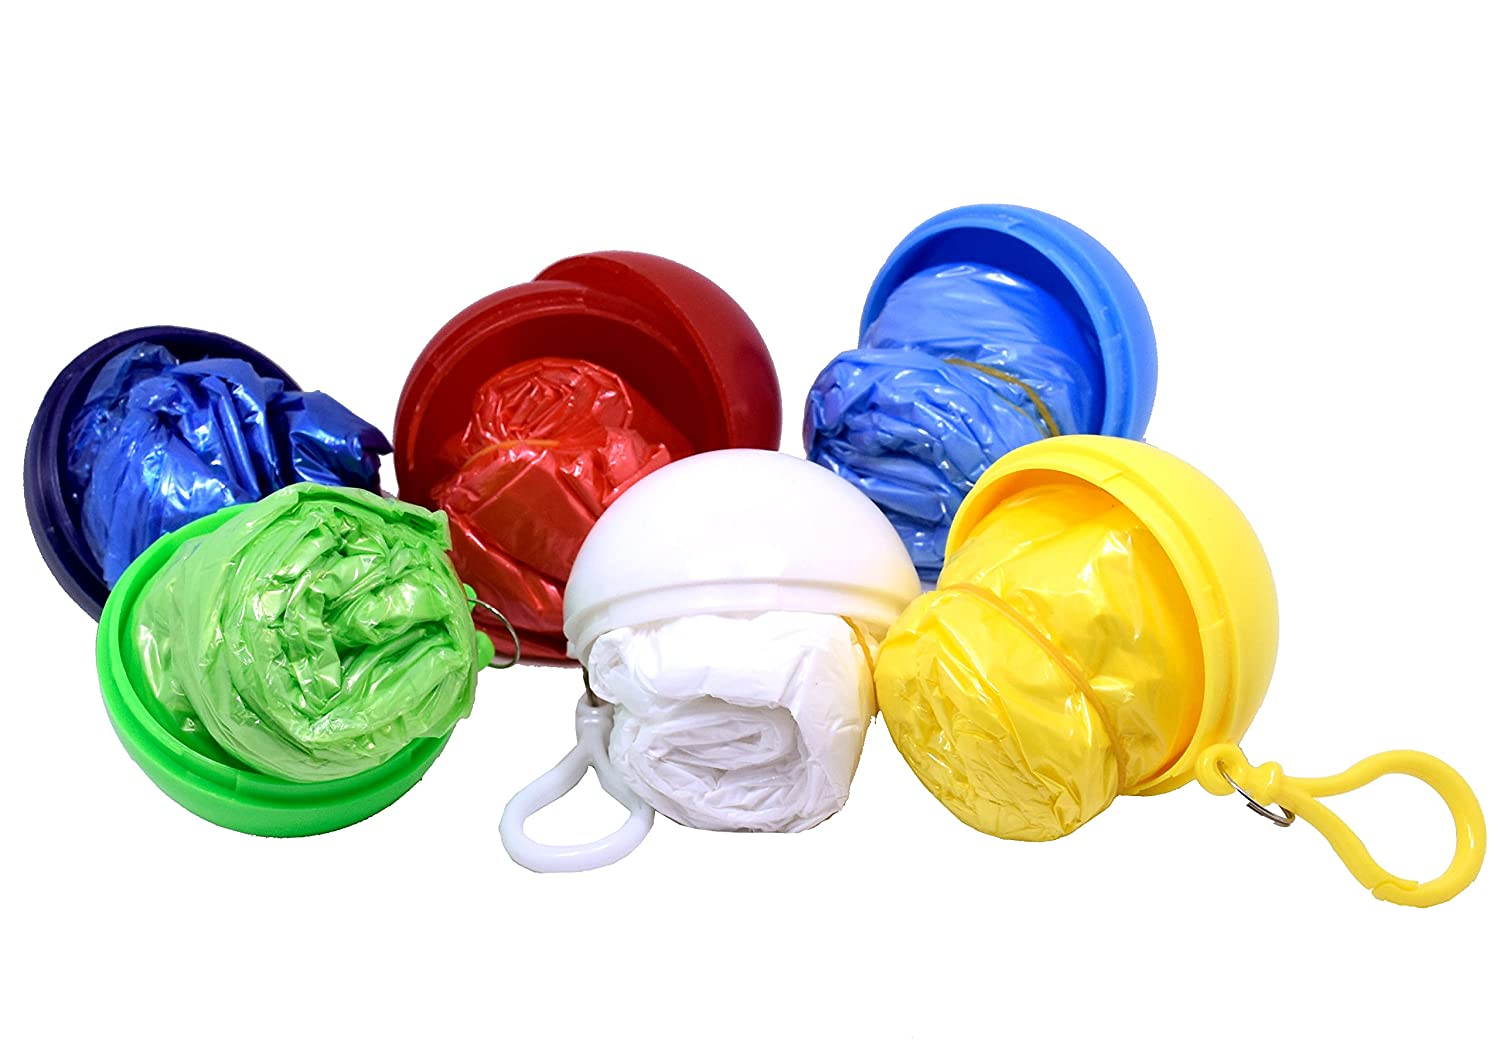 Poncho and Ball are Same Colors! TOOTO Pack of 6 Random Color Convenient Disposable Emergency Raincoats Portable Hook Poncho Ball For Outdoor Activities